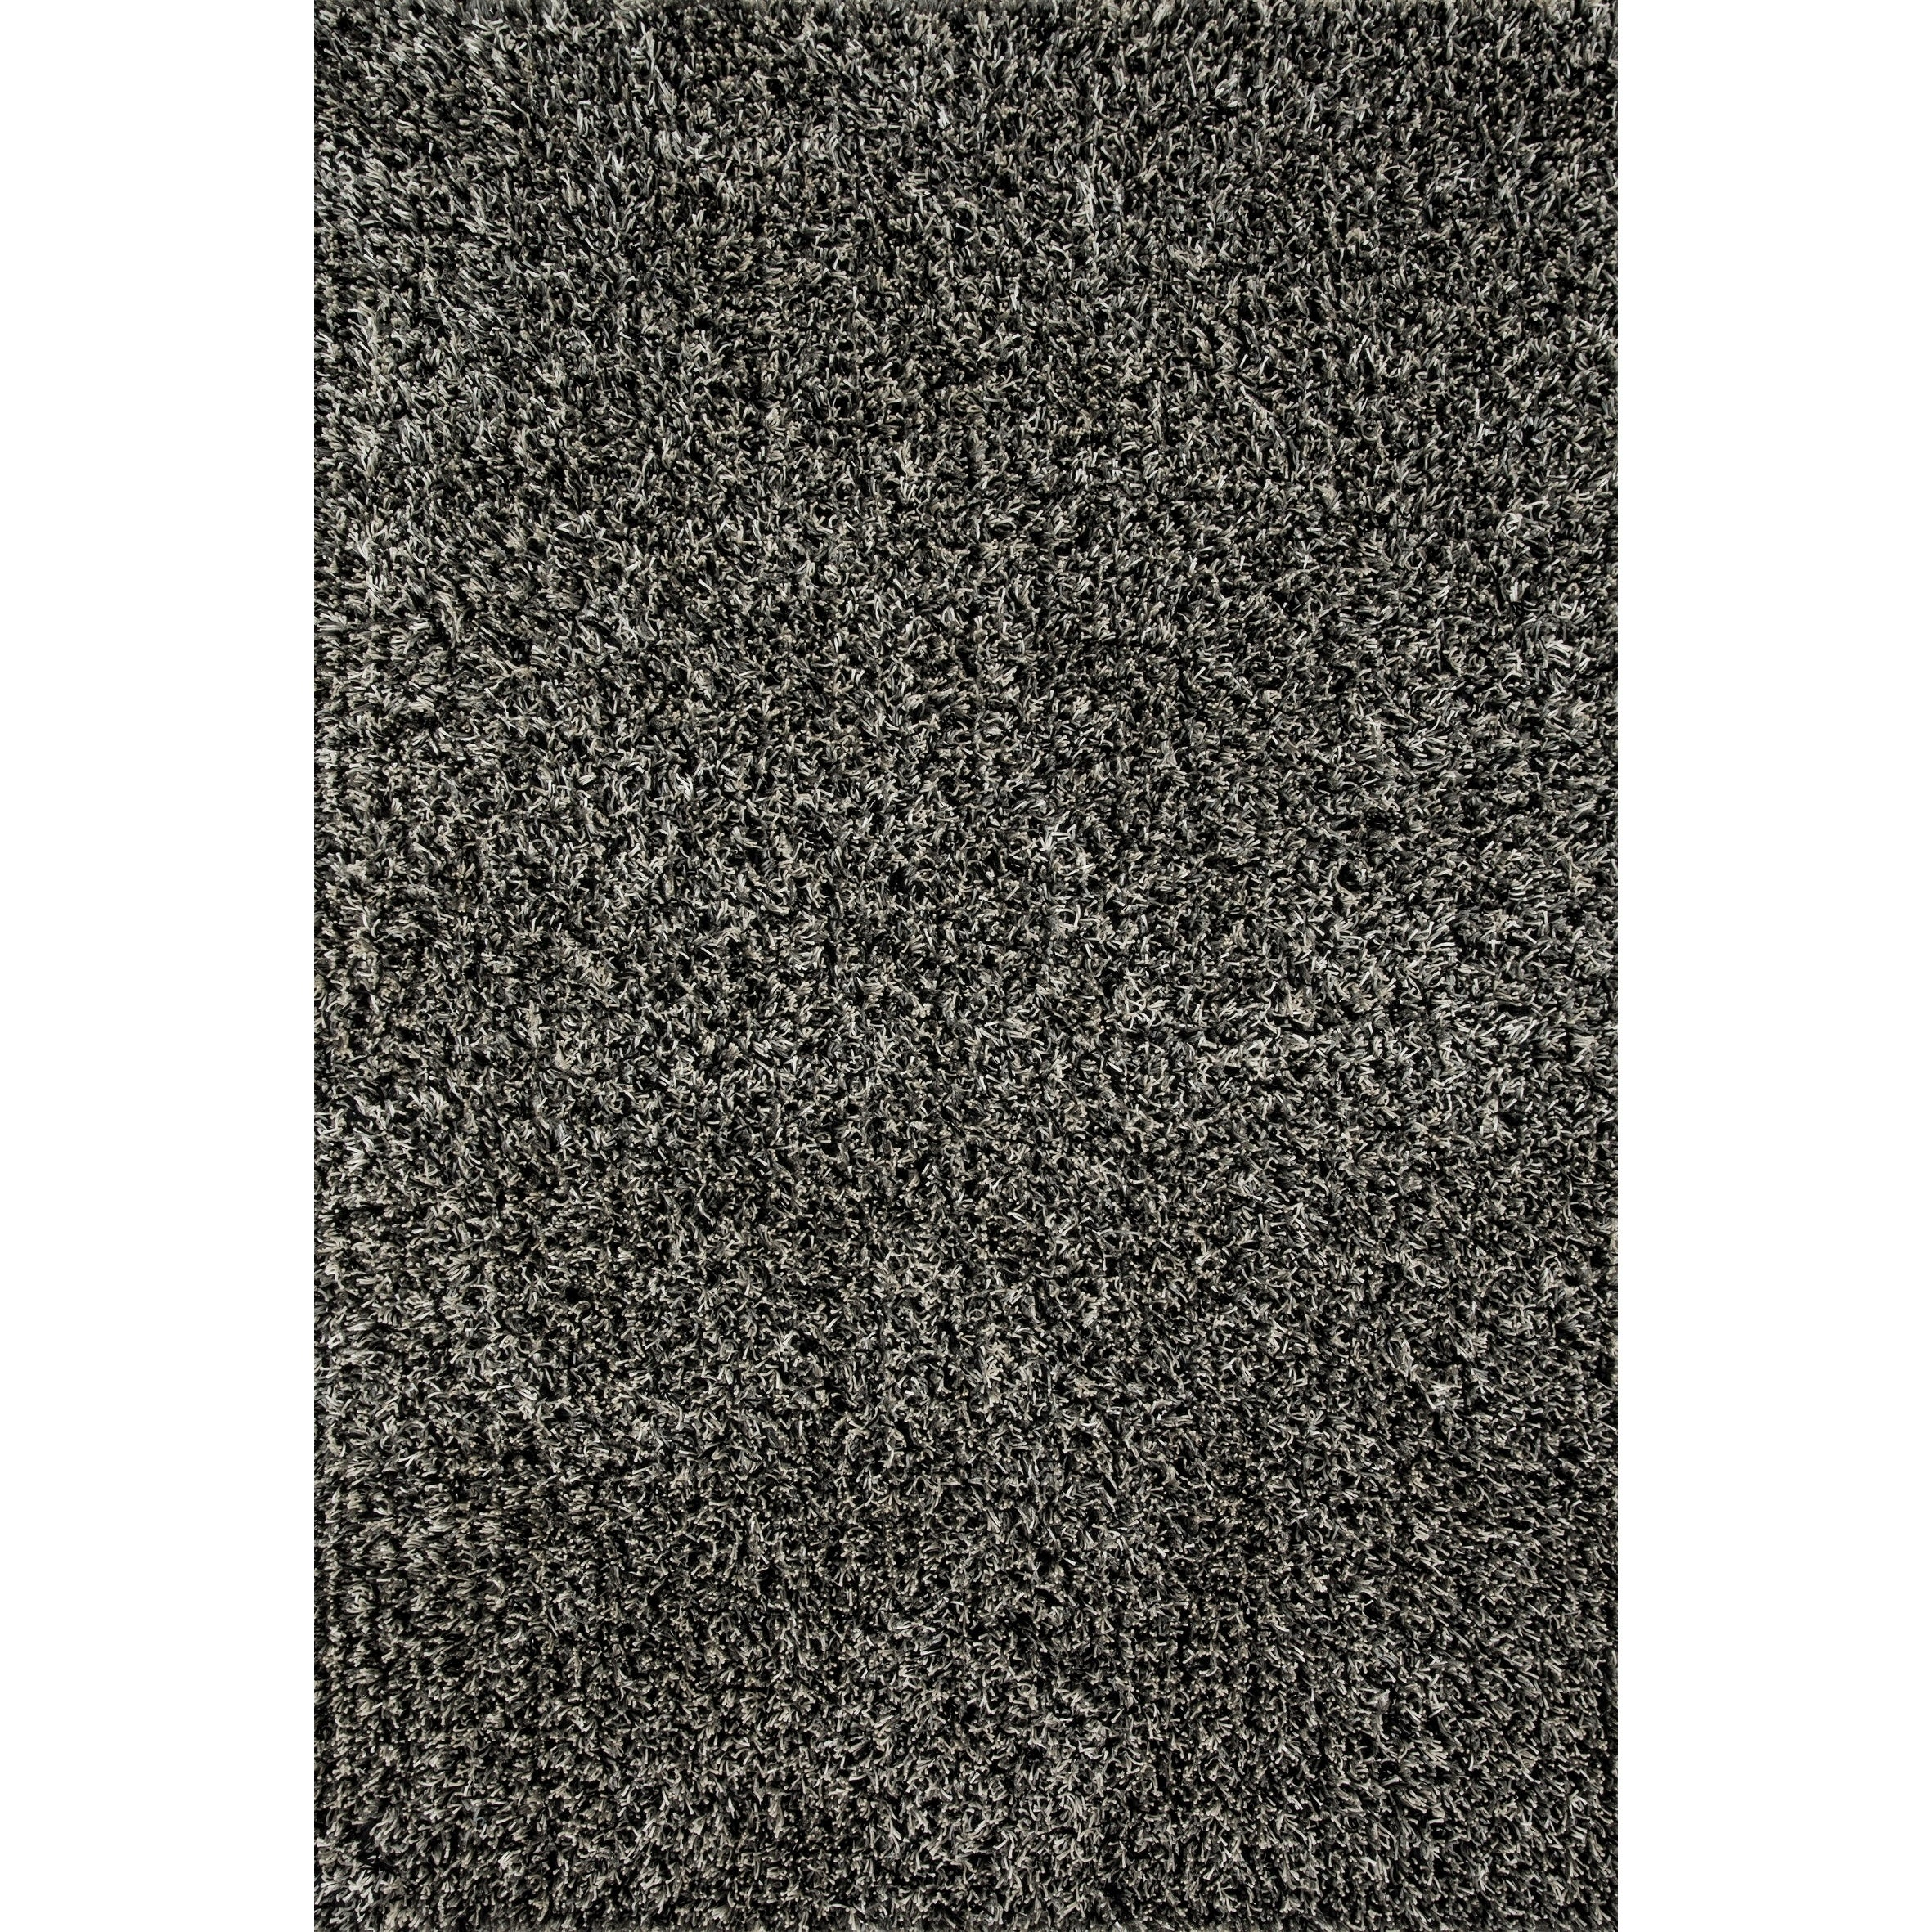 Mid-century Modern Grey/ Black Shag Rug - 5 x 76 (Grey/Black - 5 x 76)